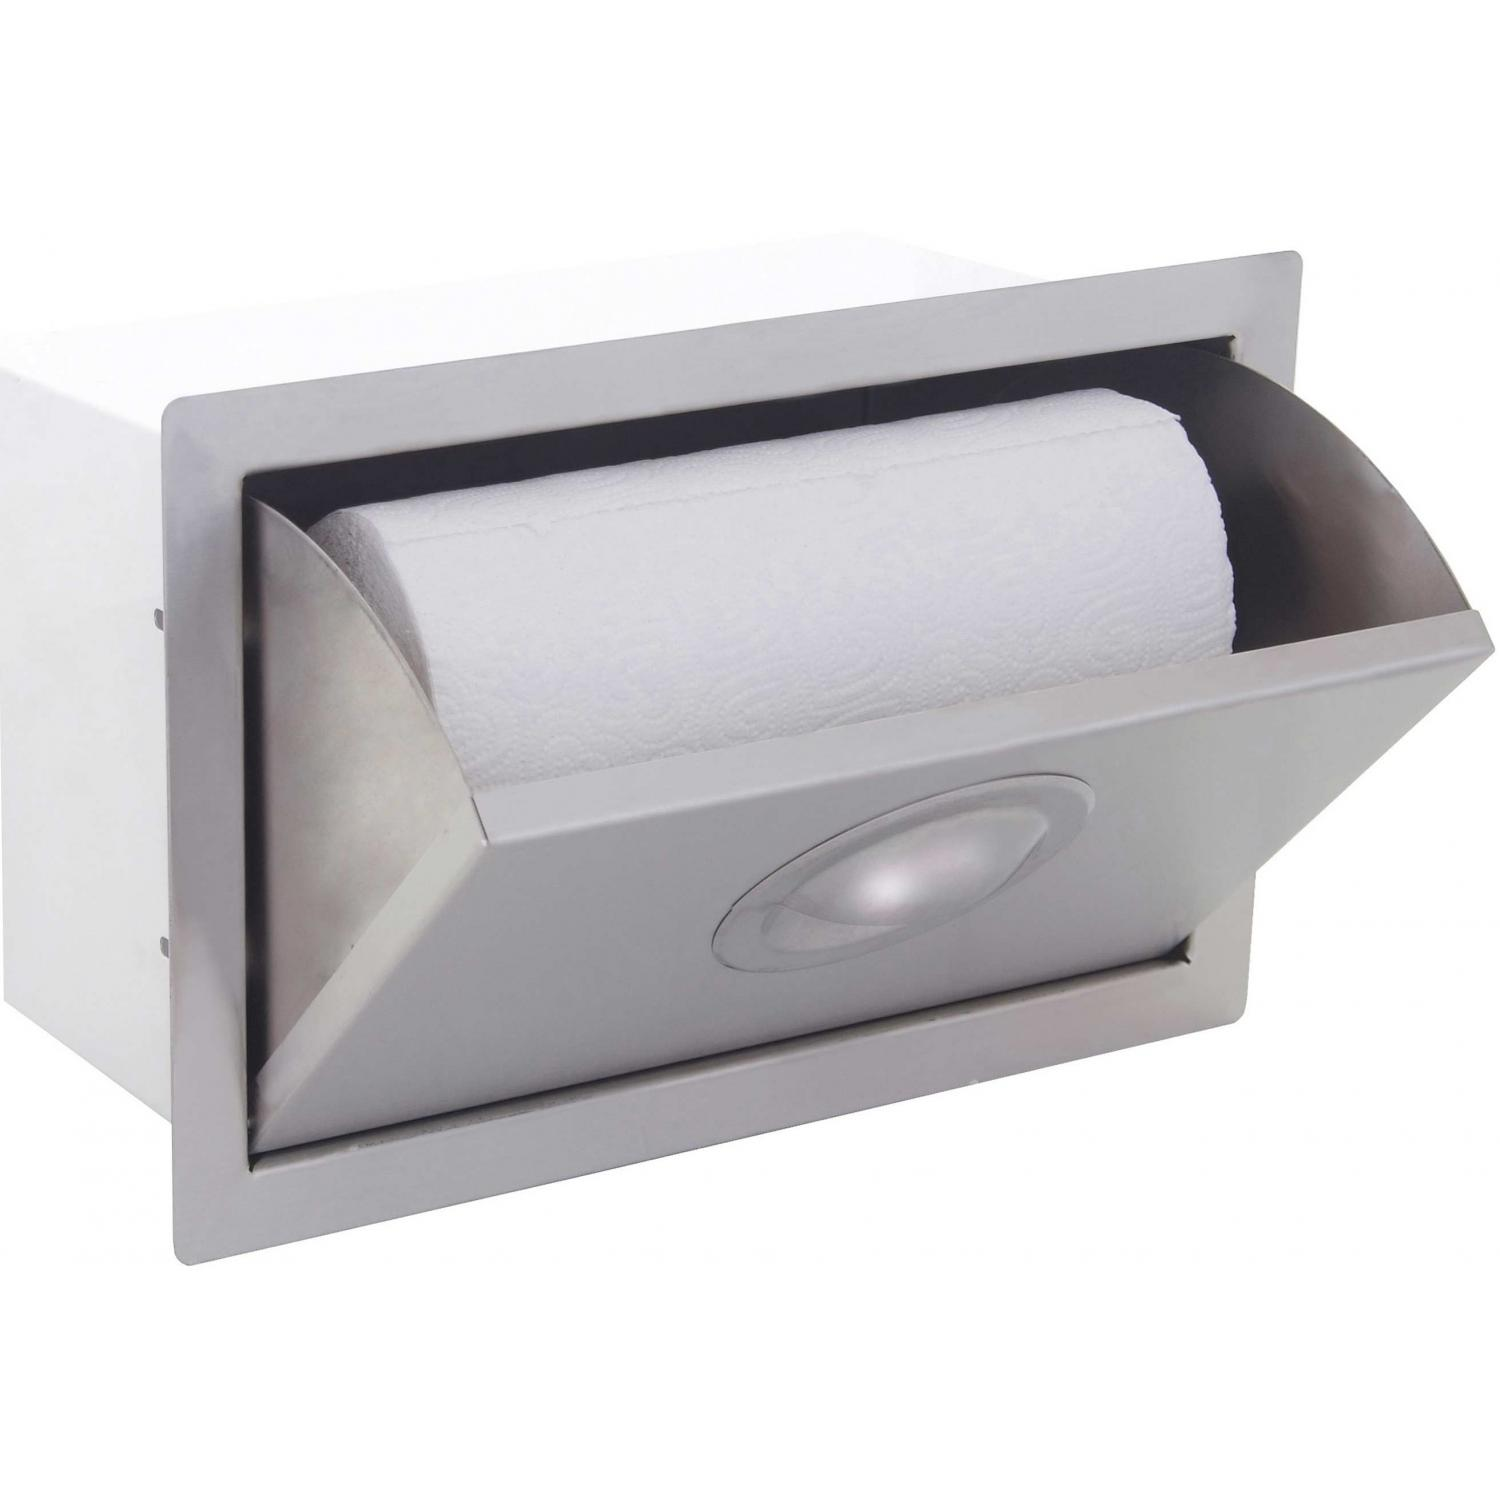 Bbqguys.com Portofino Series Built-in Stainless Steel Paper Towel Dispenser